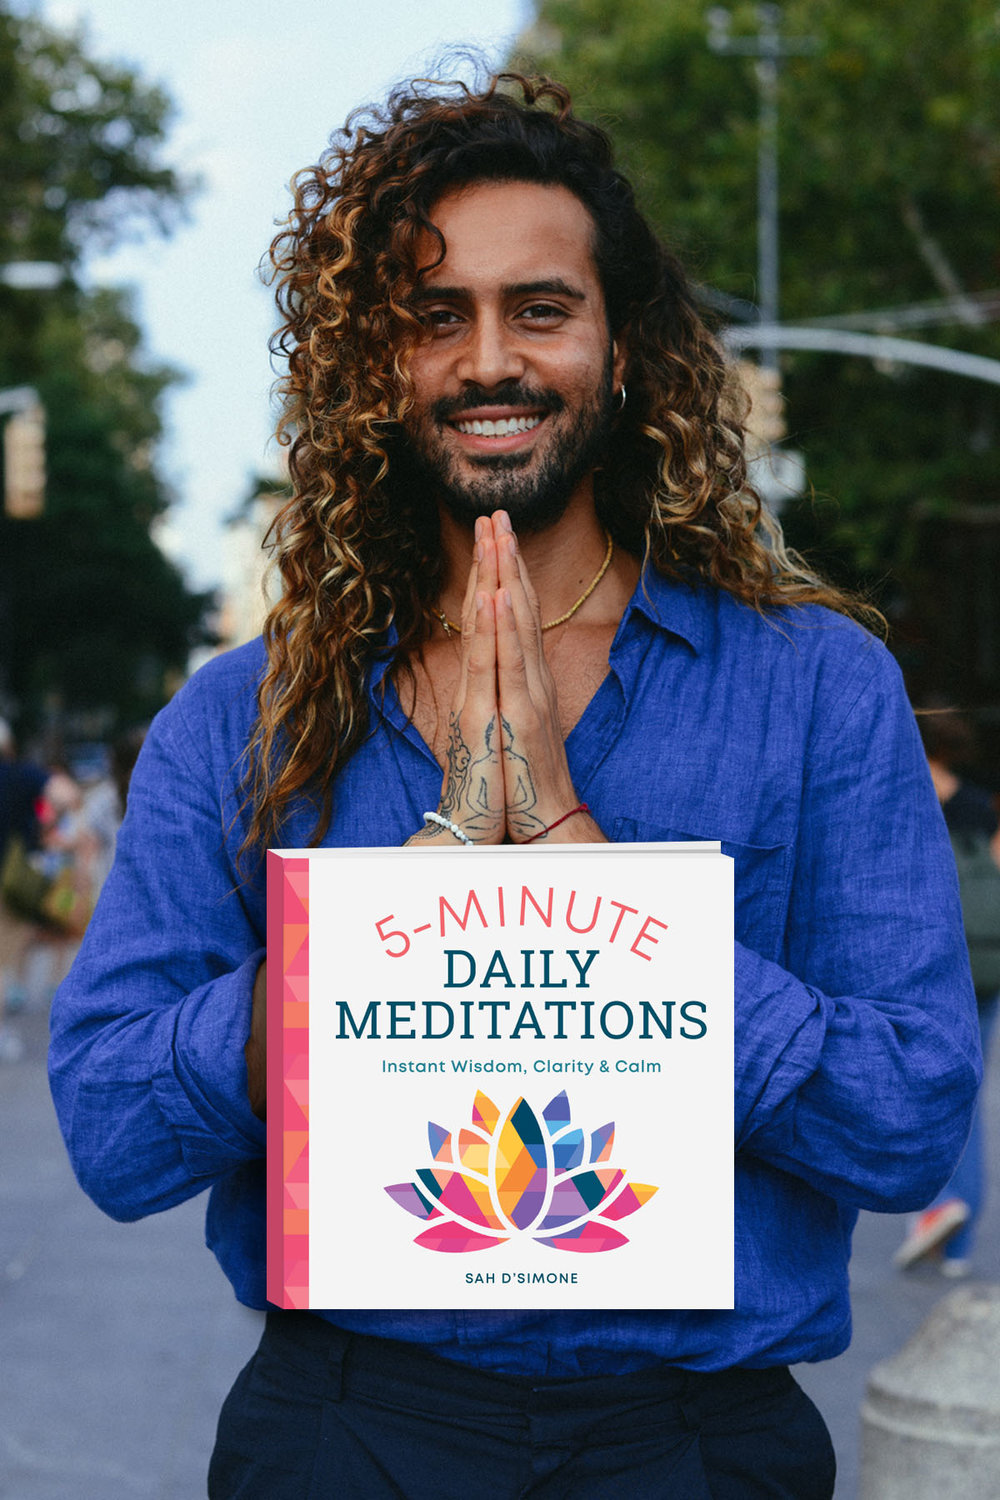 5-Minute Daily Meditations: Instant Wisdom, Clarity, and Calm - These short and accessible daily meditations allow you to practice mindfulness any day, anytime, and anywhere. With 365 daily meditations on everything from emotions and fears to forgiveness and love, 5-Minute Daily Meditations is a go-to guide for mindful living when life gets busy.Pre-order Now ➝